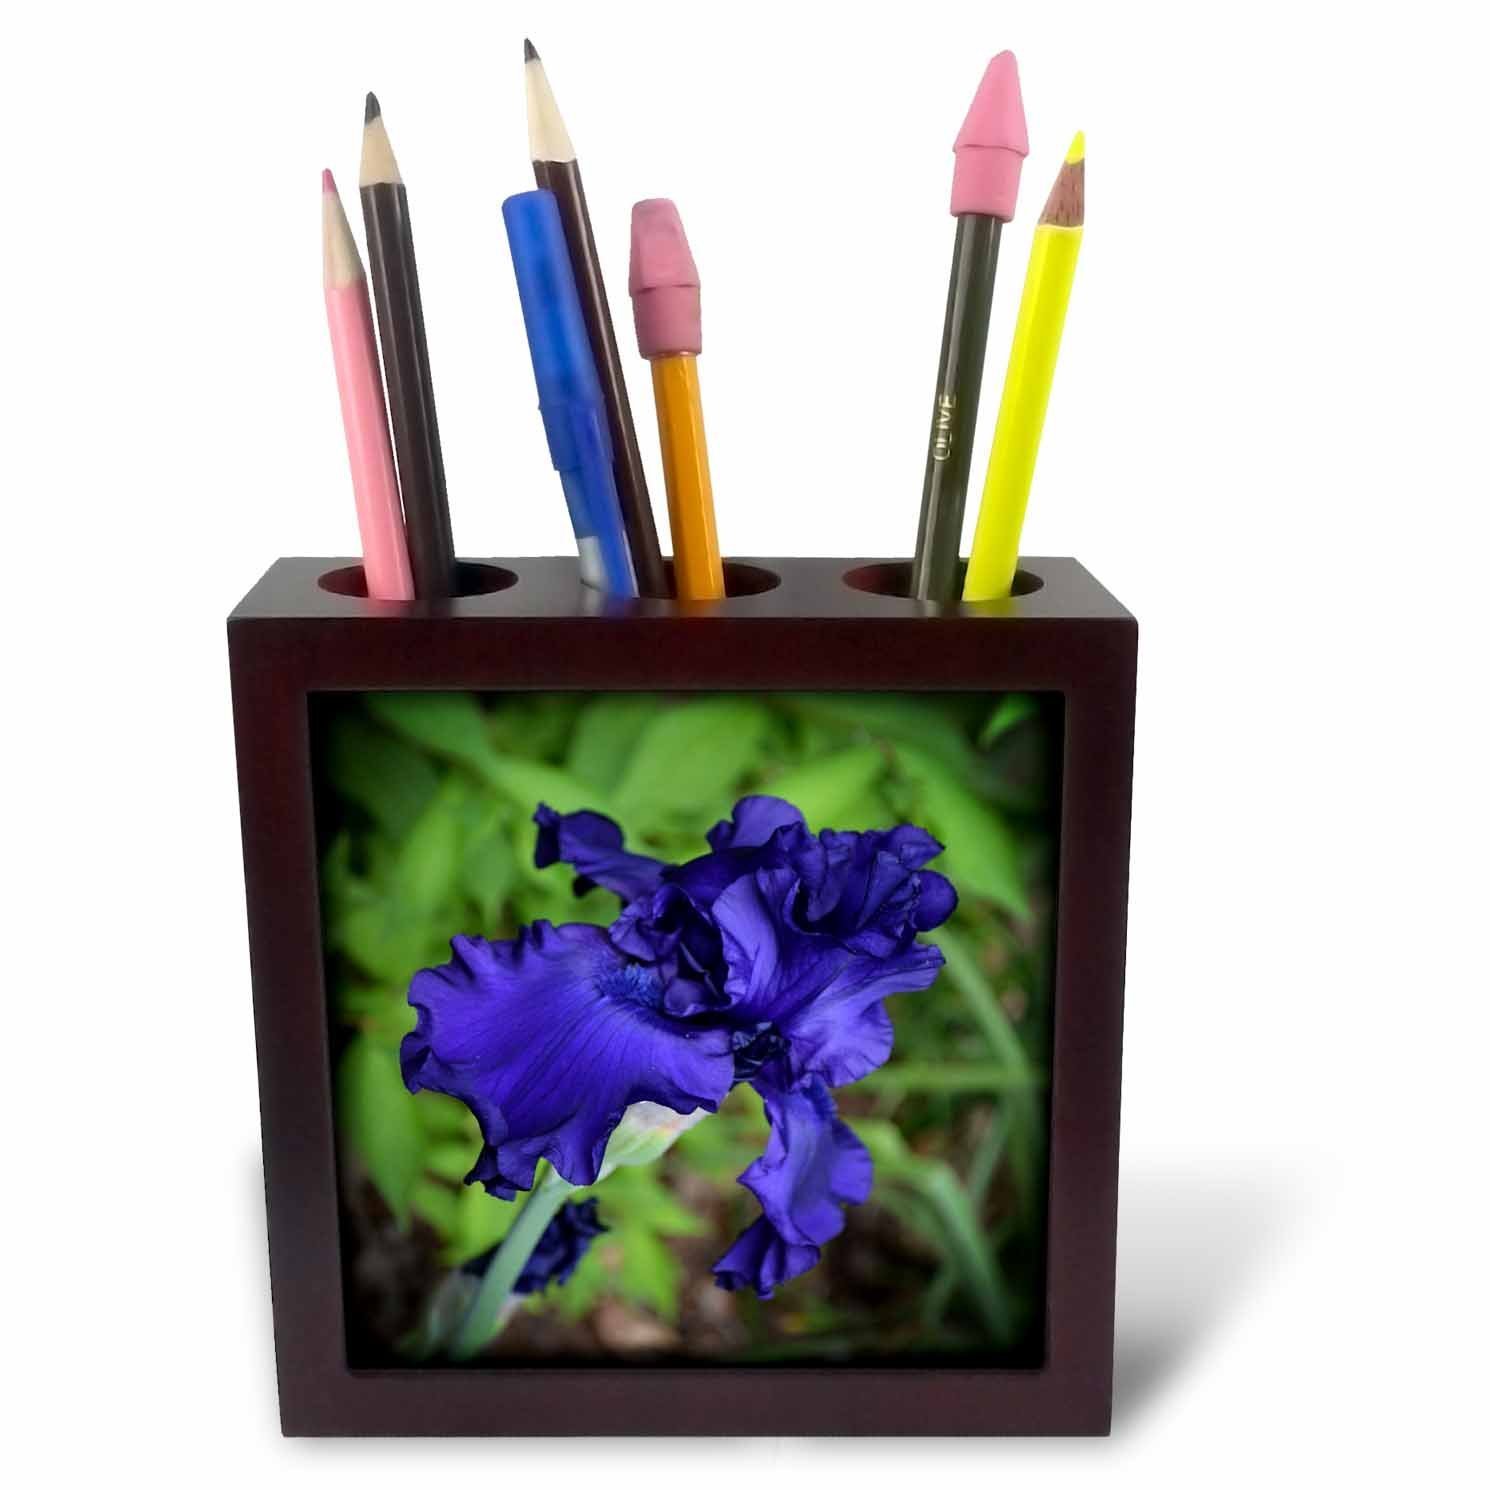 Cheap iris blue flower find iris blue flower deals on line at get quotations 3drose whiteoaks photography and artwork iris flowers royal blue at its best is a izmirmasajfo